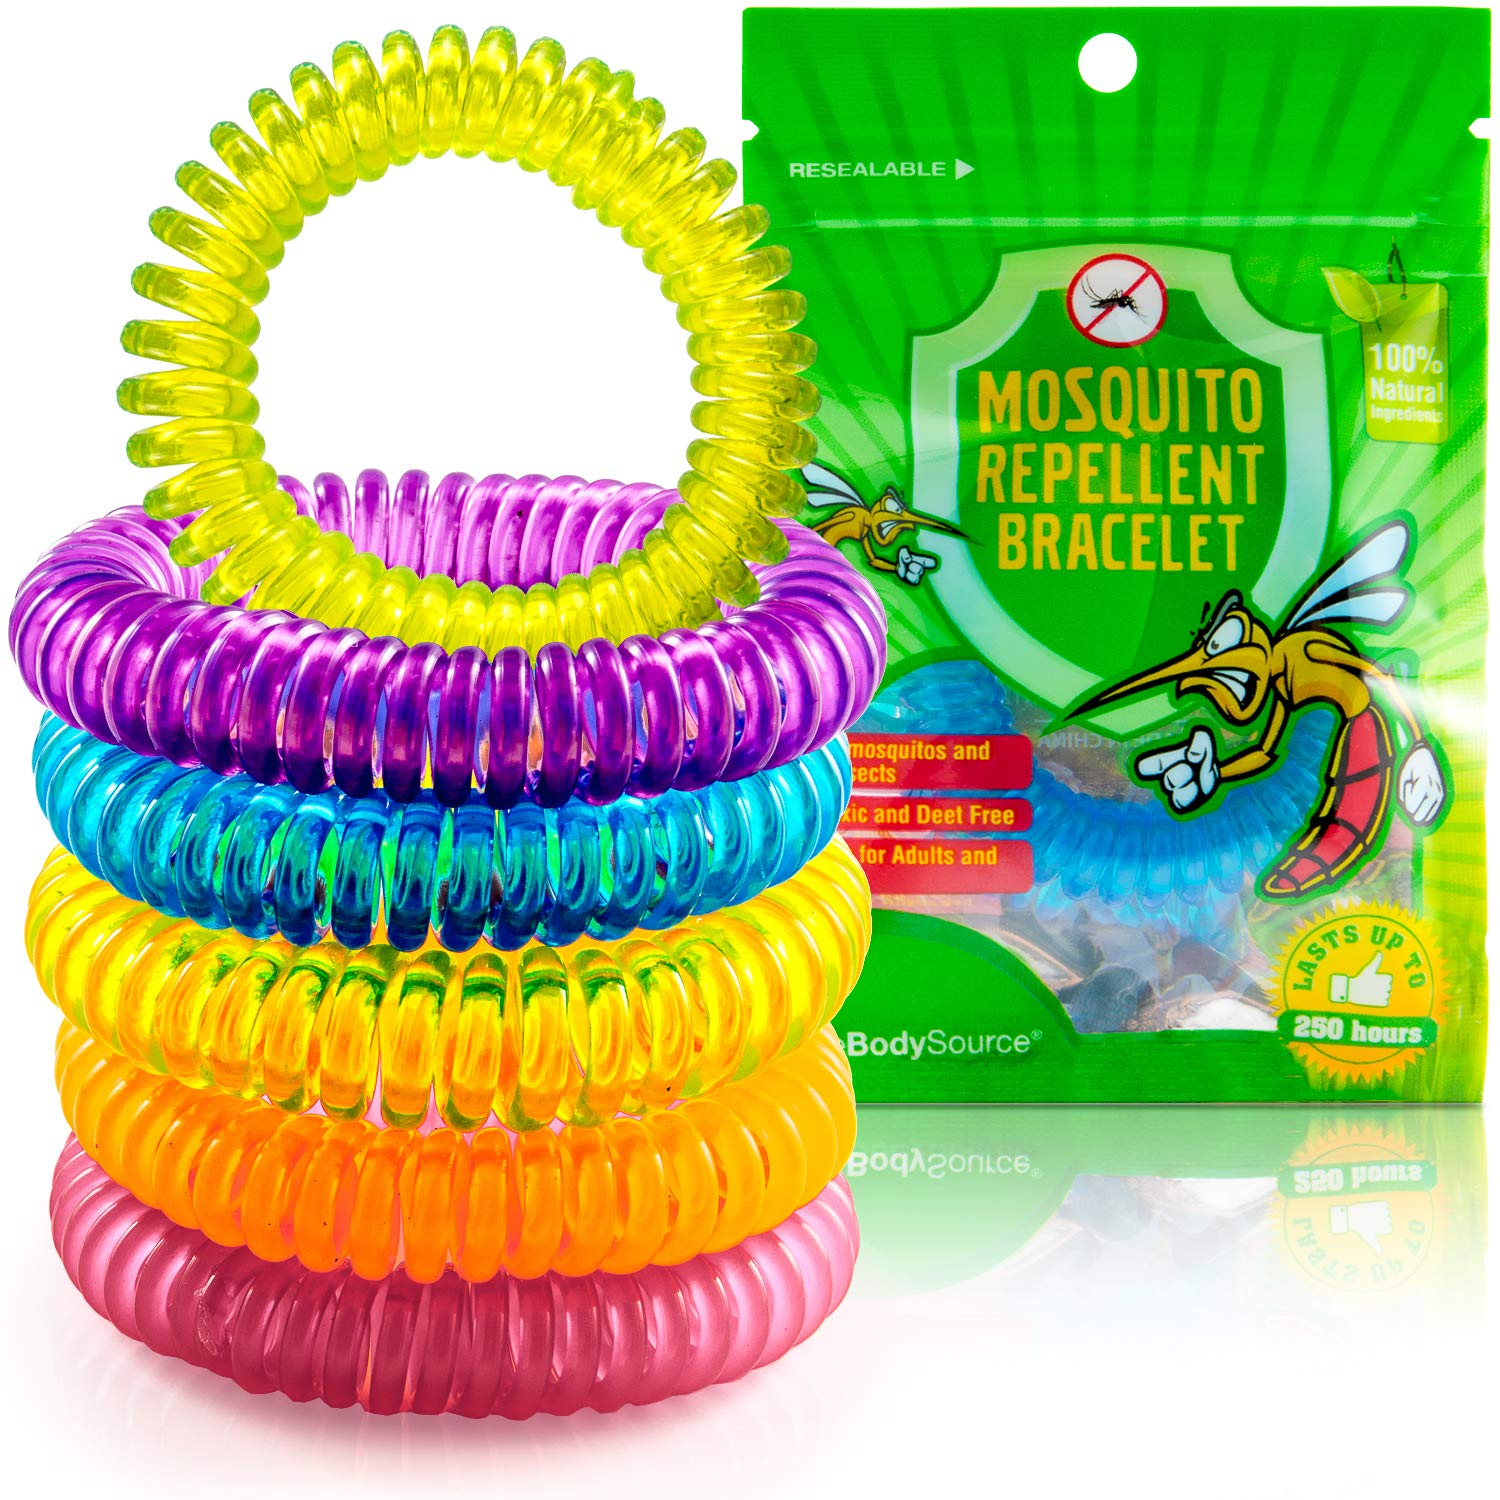 The Body Source Mosquito Repellent Bracelets 10 Pack Deet Repeller Insect And Bug Electronic Kit Free All Natural Anti Midge Bands Waterproof Citronella